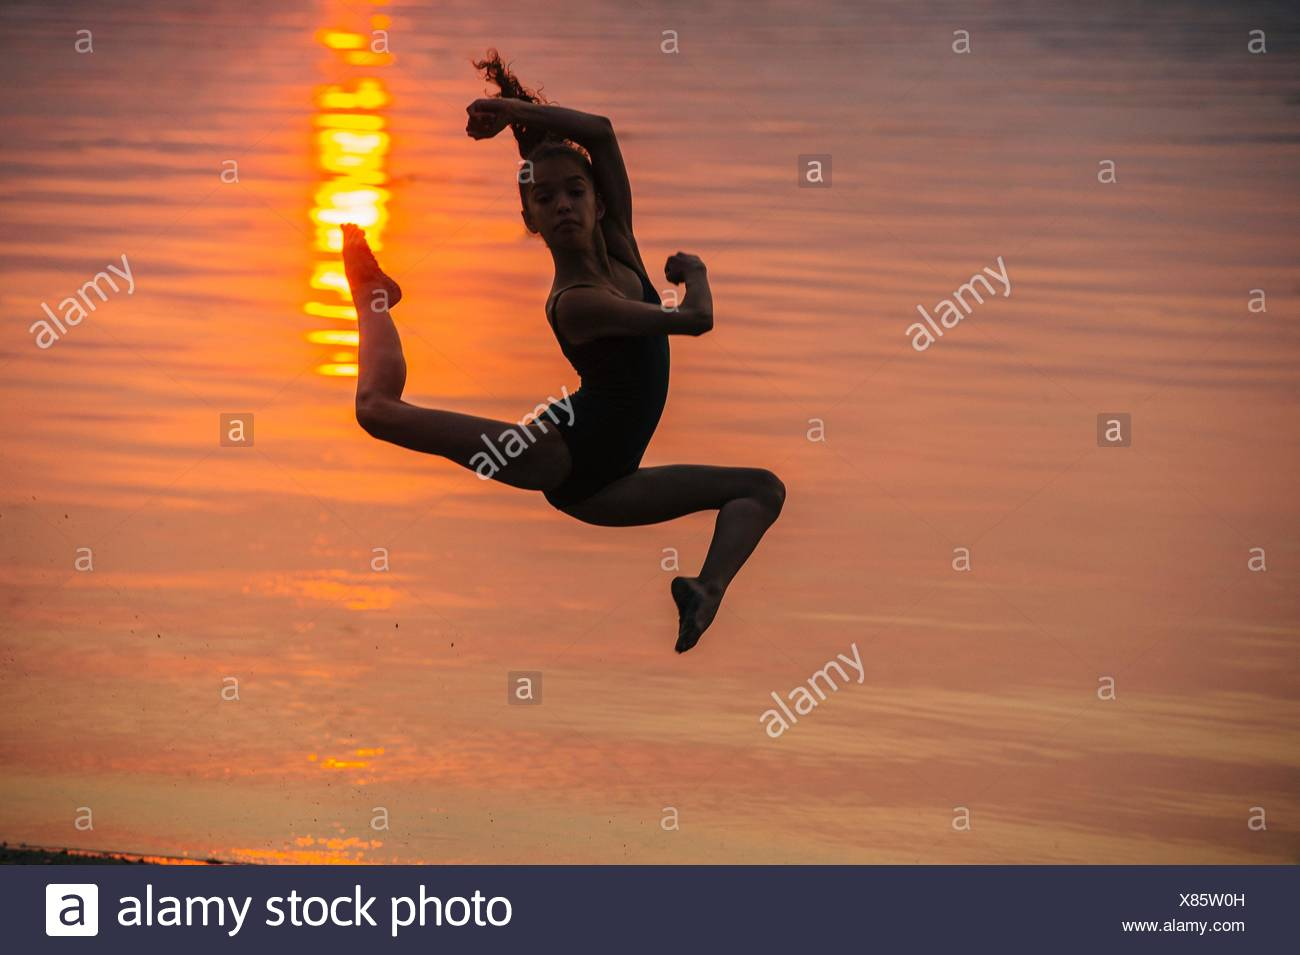 Side view of girl in silhouette by ocean at sunset leaping in mid air, legs apart looking at camera - Stock Image